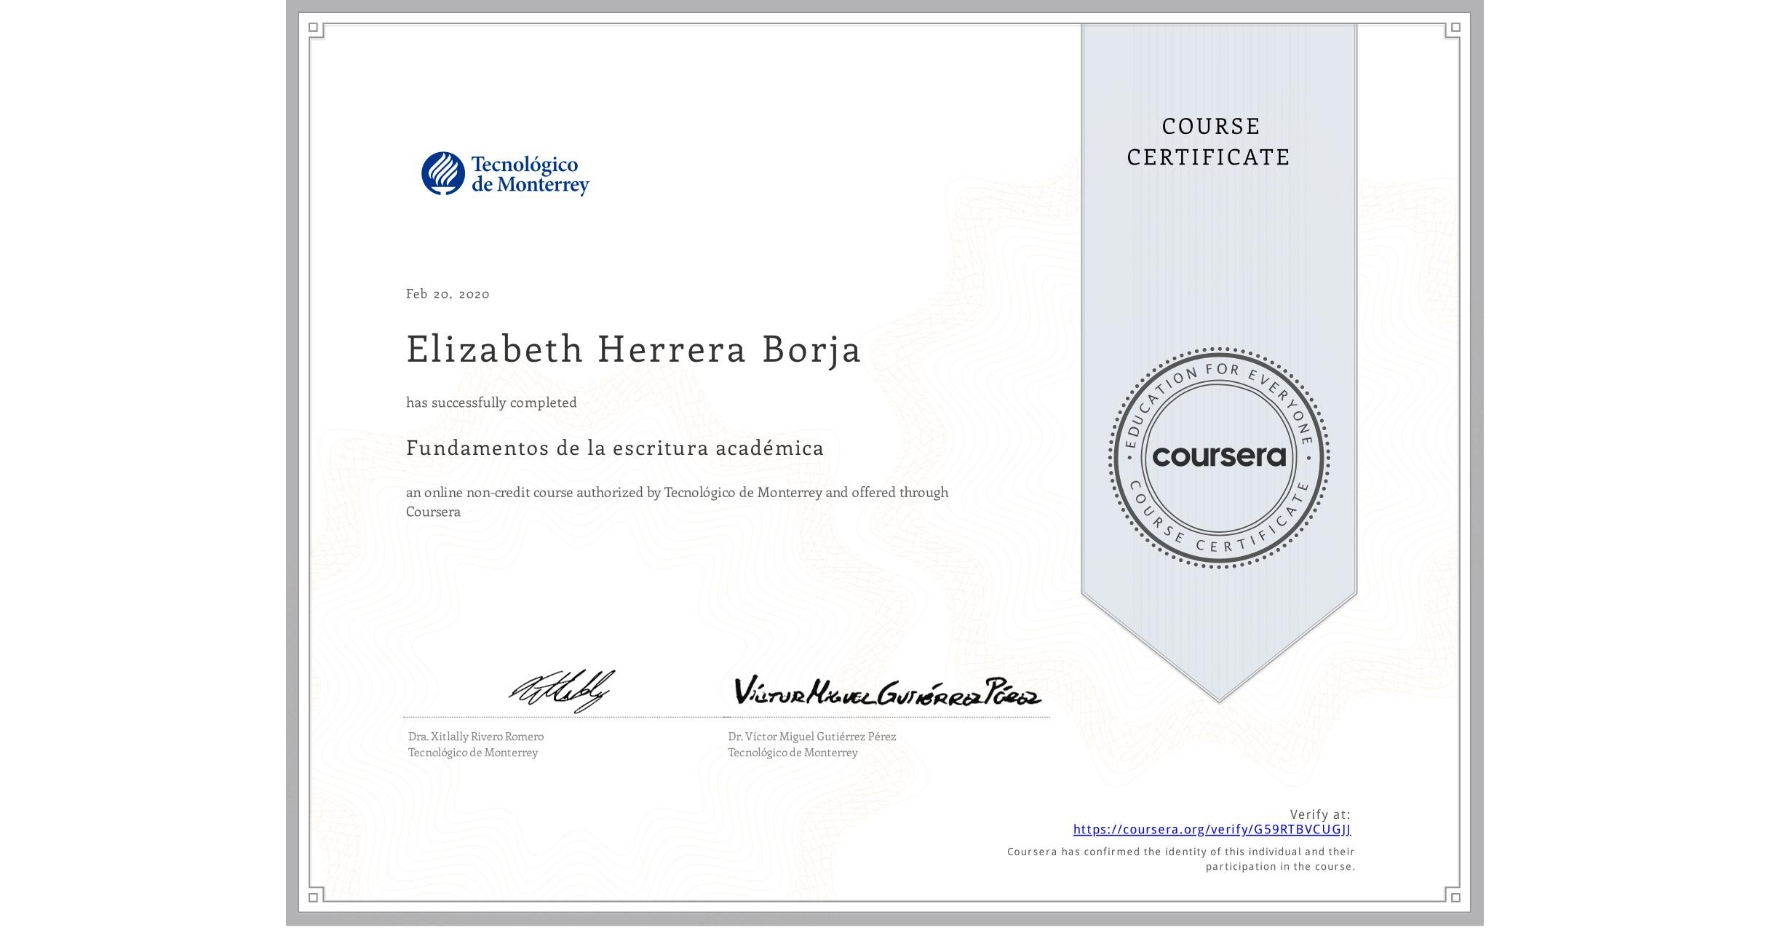 View certificate for Elizabeth Herrera Borja, Fundamentos de la escritura académica, an online non-credit course authorized by Tecnológico de Monterrey and offered through Coursera